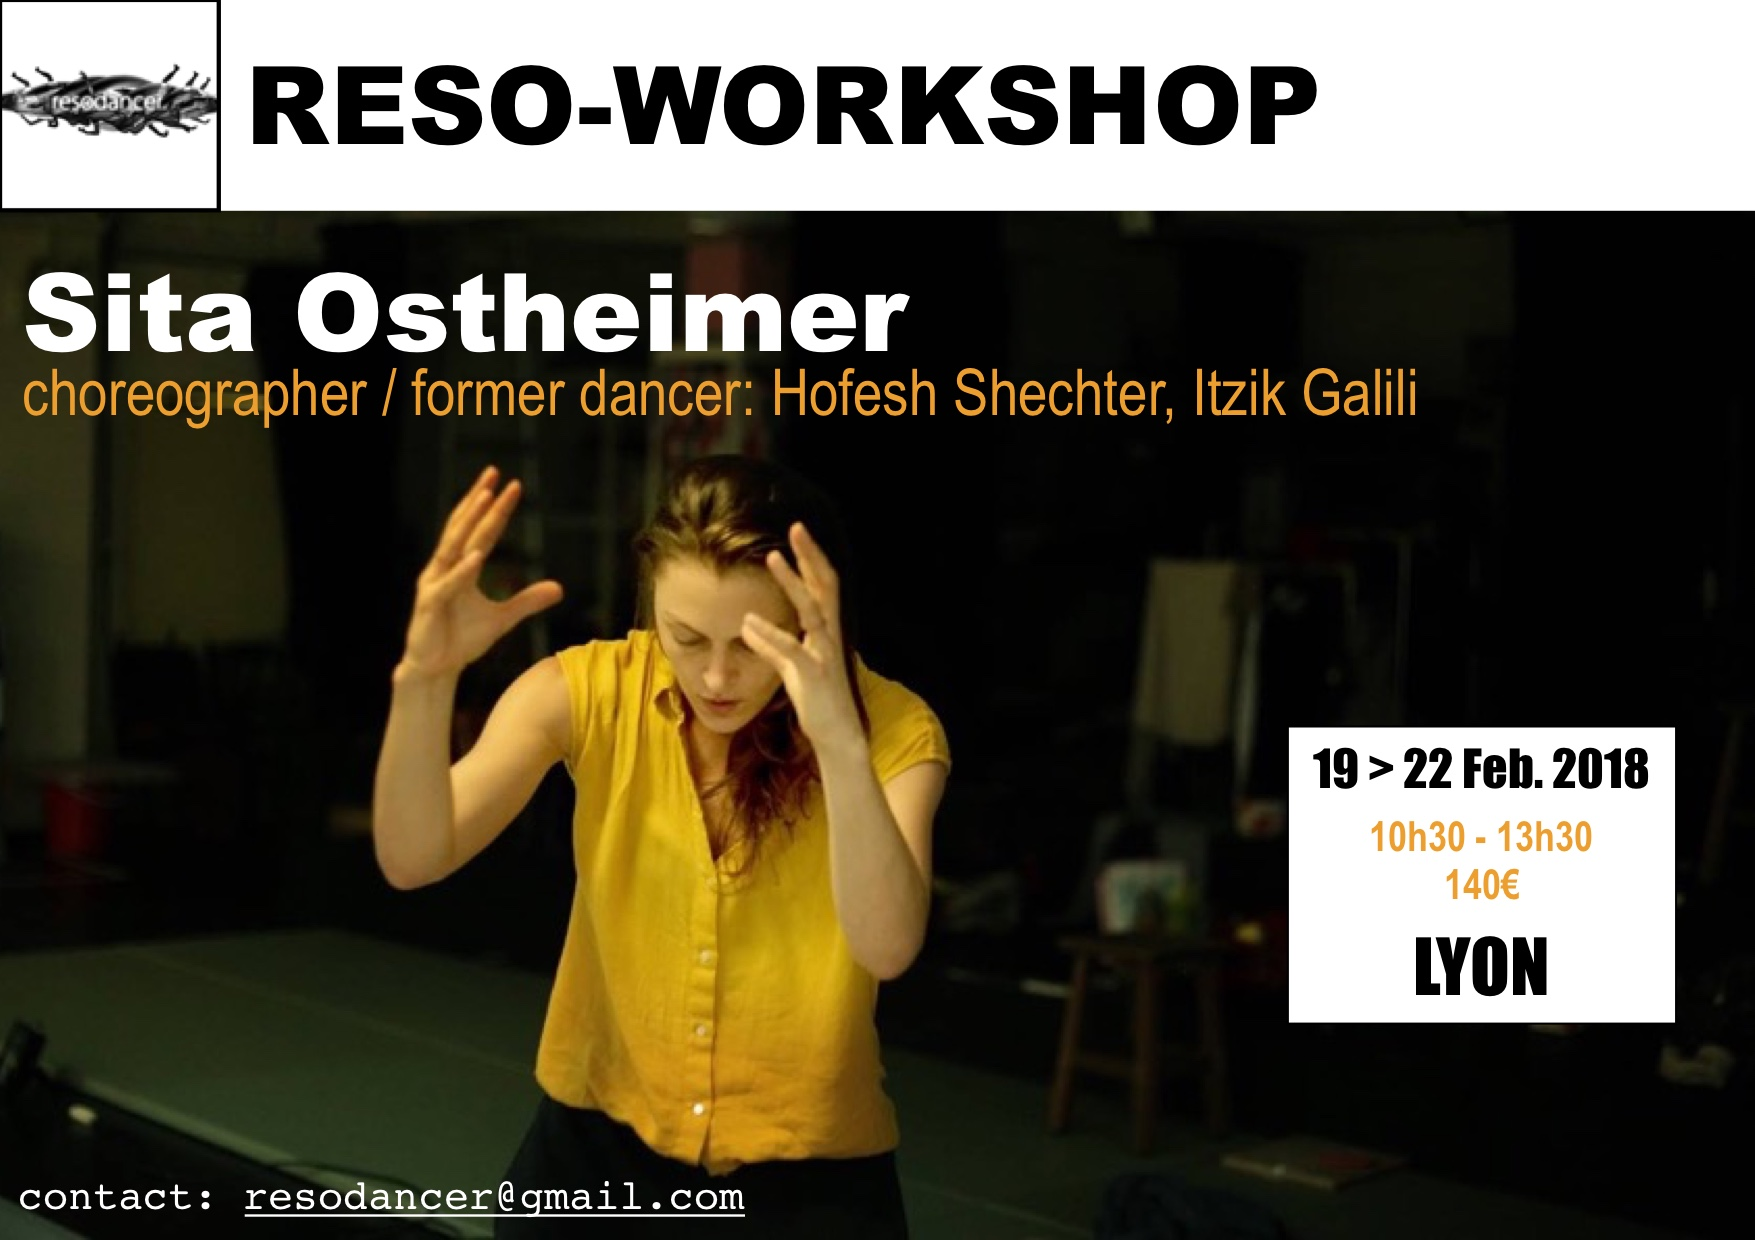 Reso-Workshop Sita Ostheimer